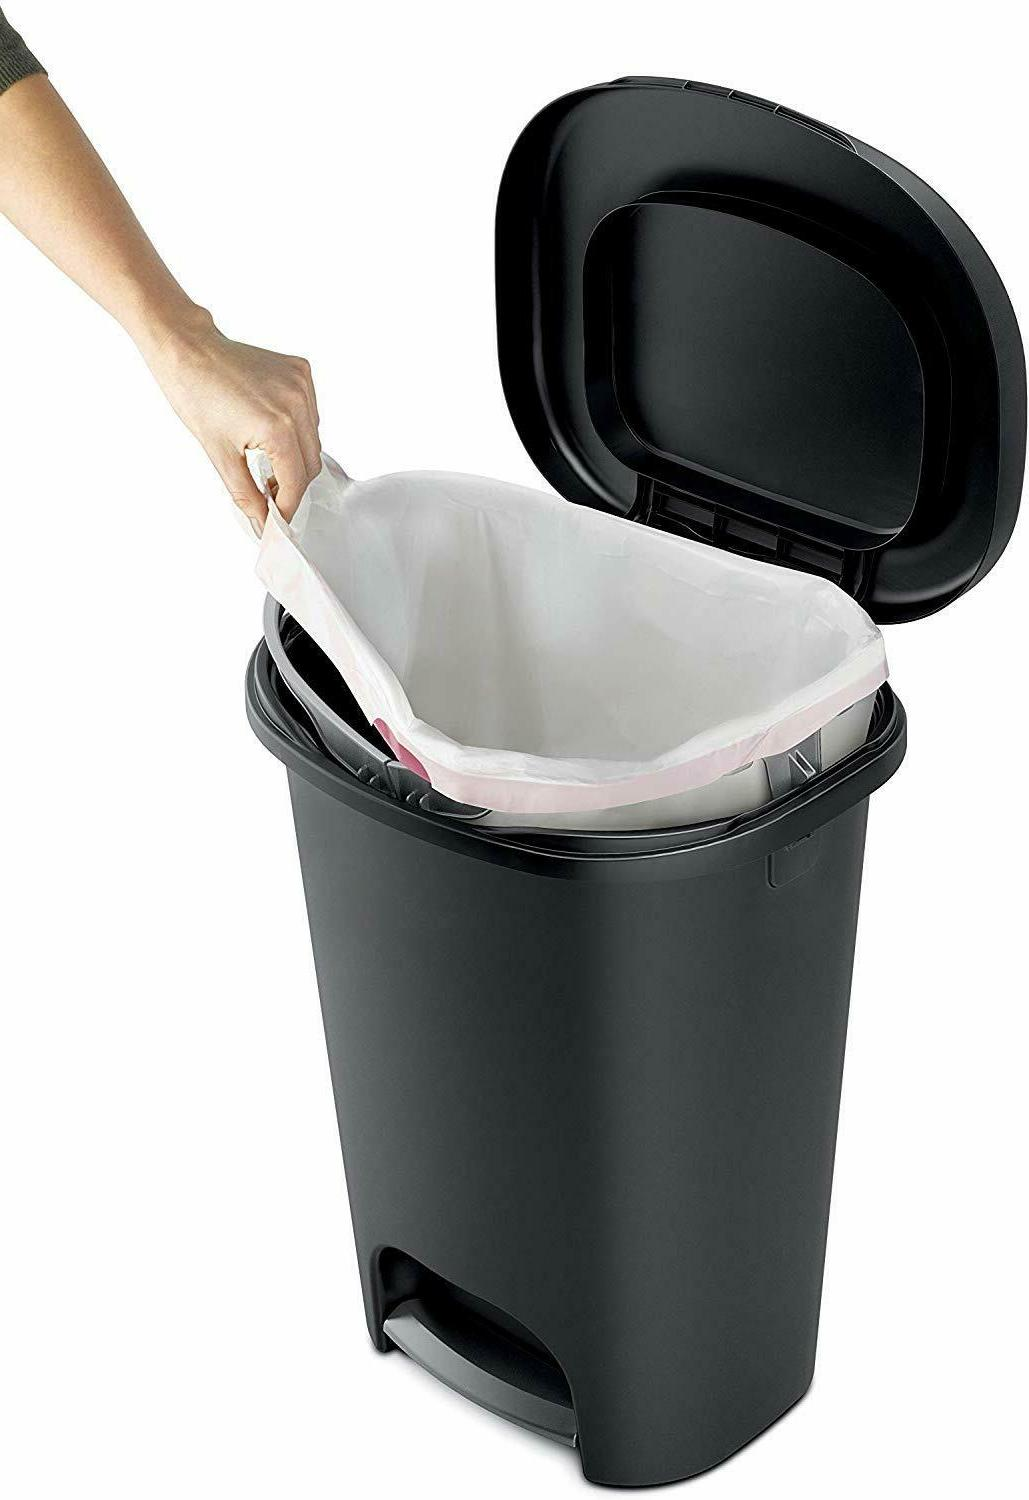 Rubbermaid Step-On Can Home,Kitchen,Bathroom Garbage,13 Gallon